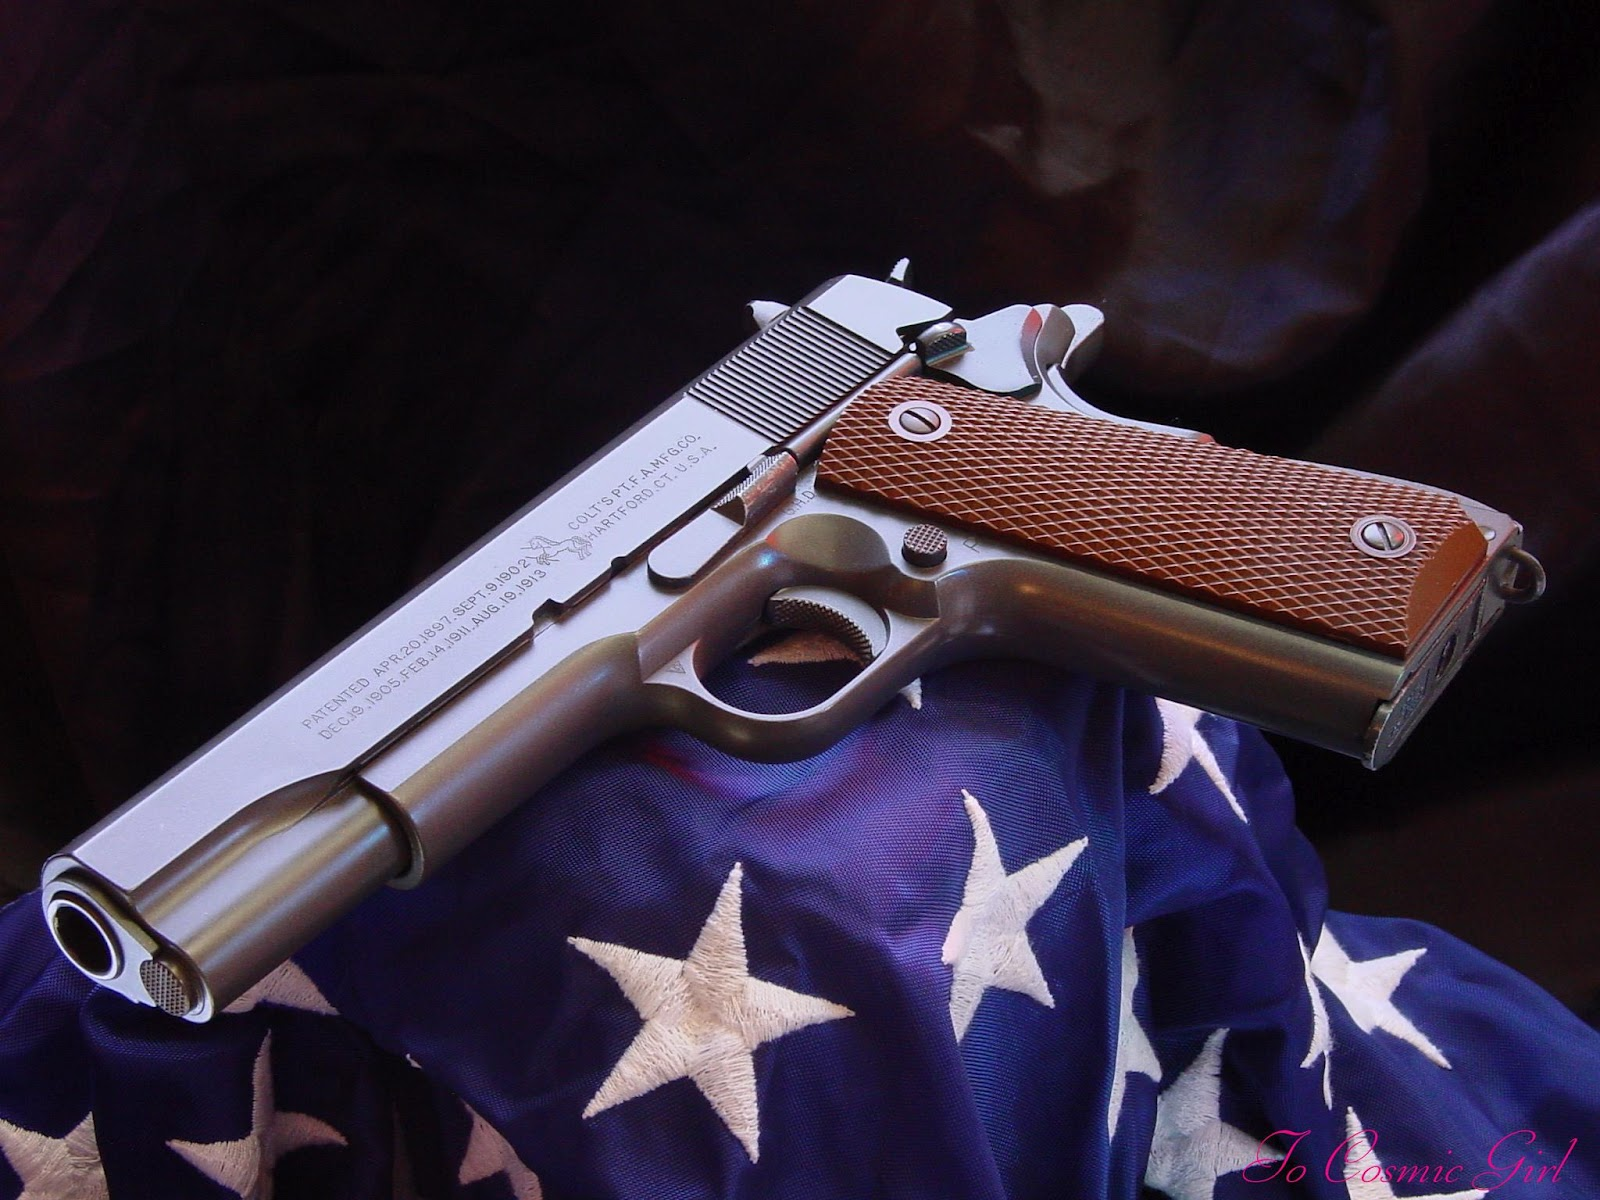 Guns & Weapons: Colt M1911